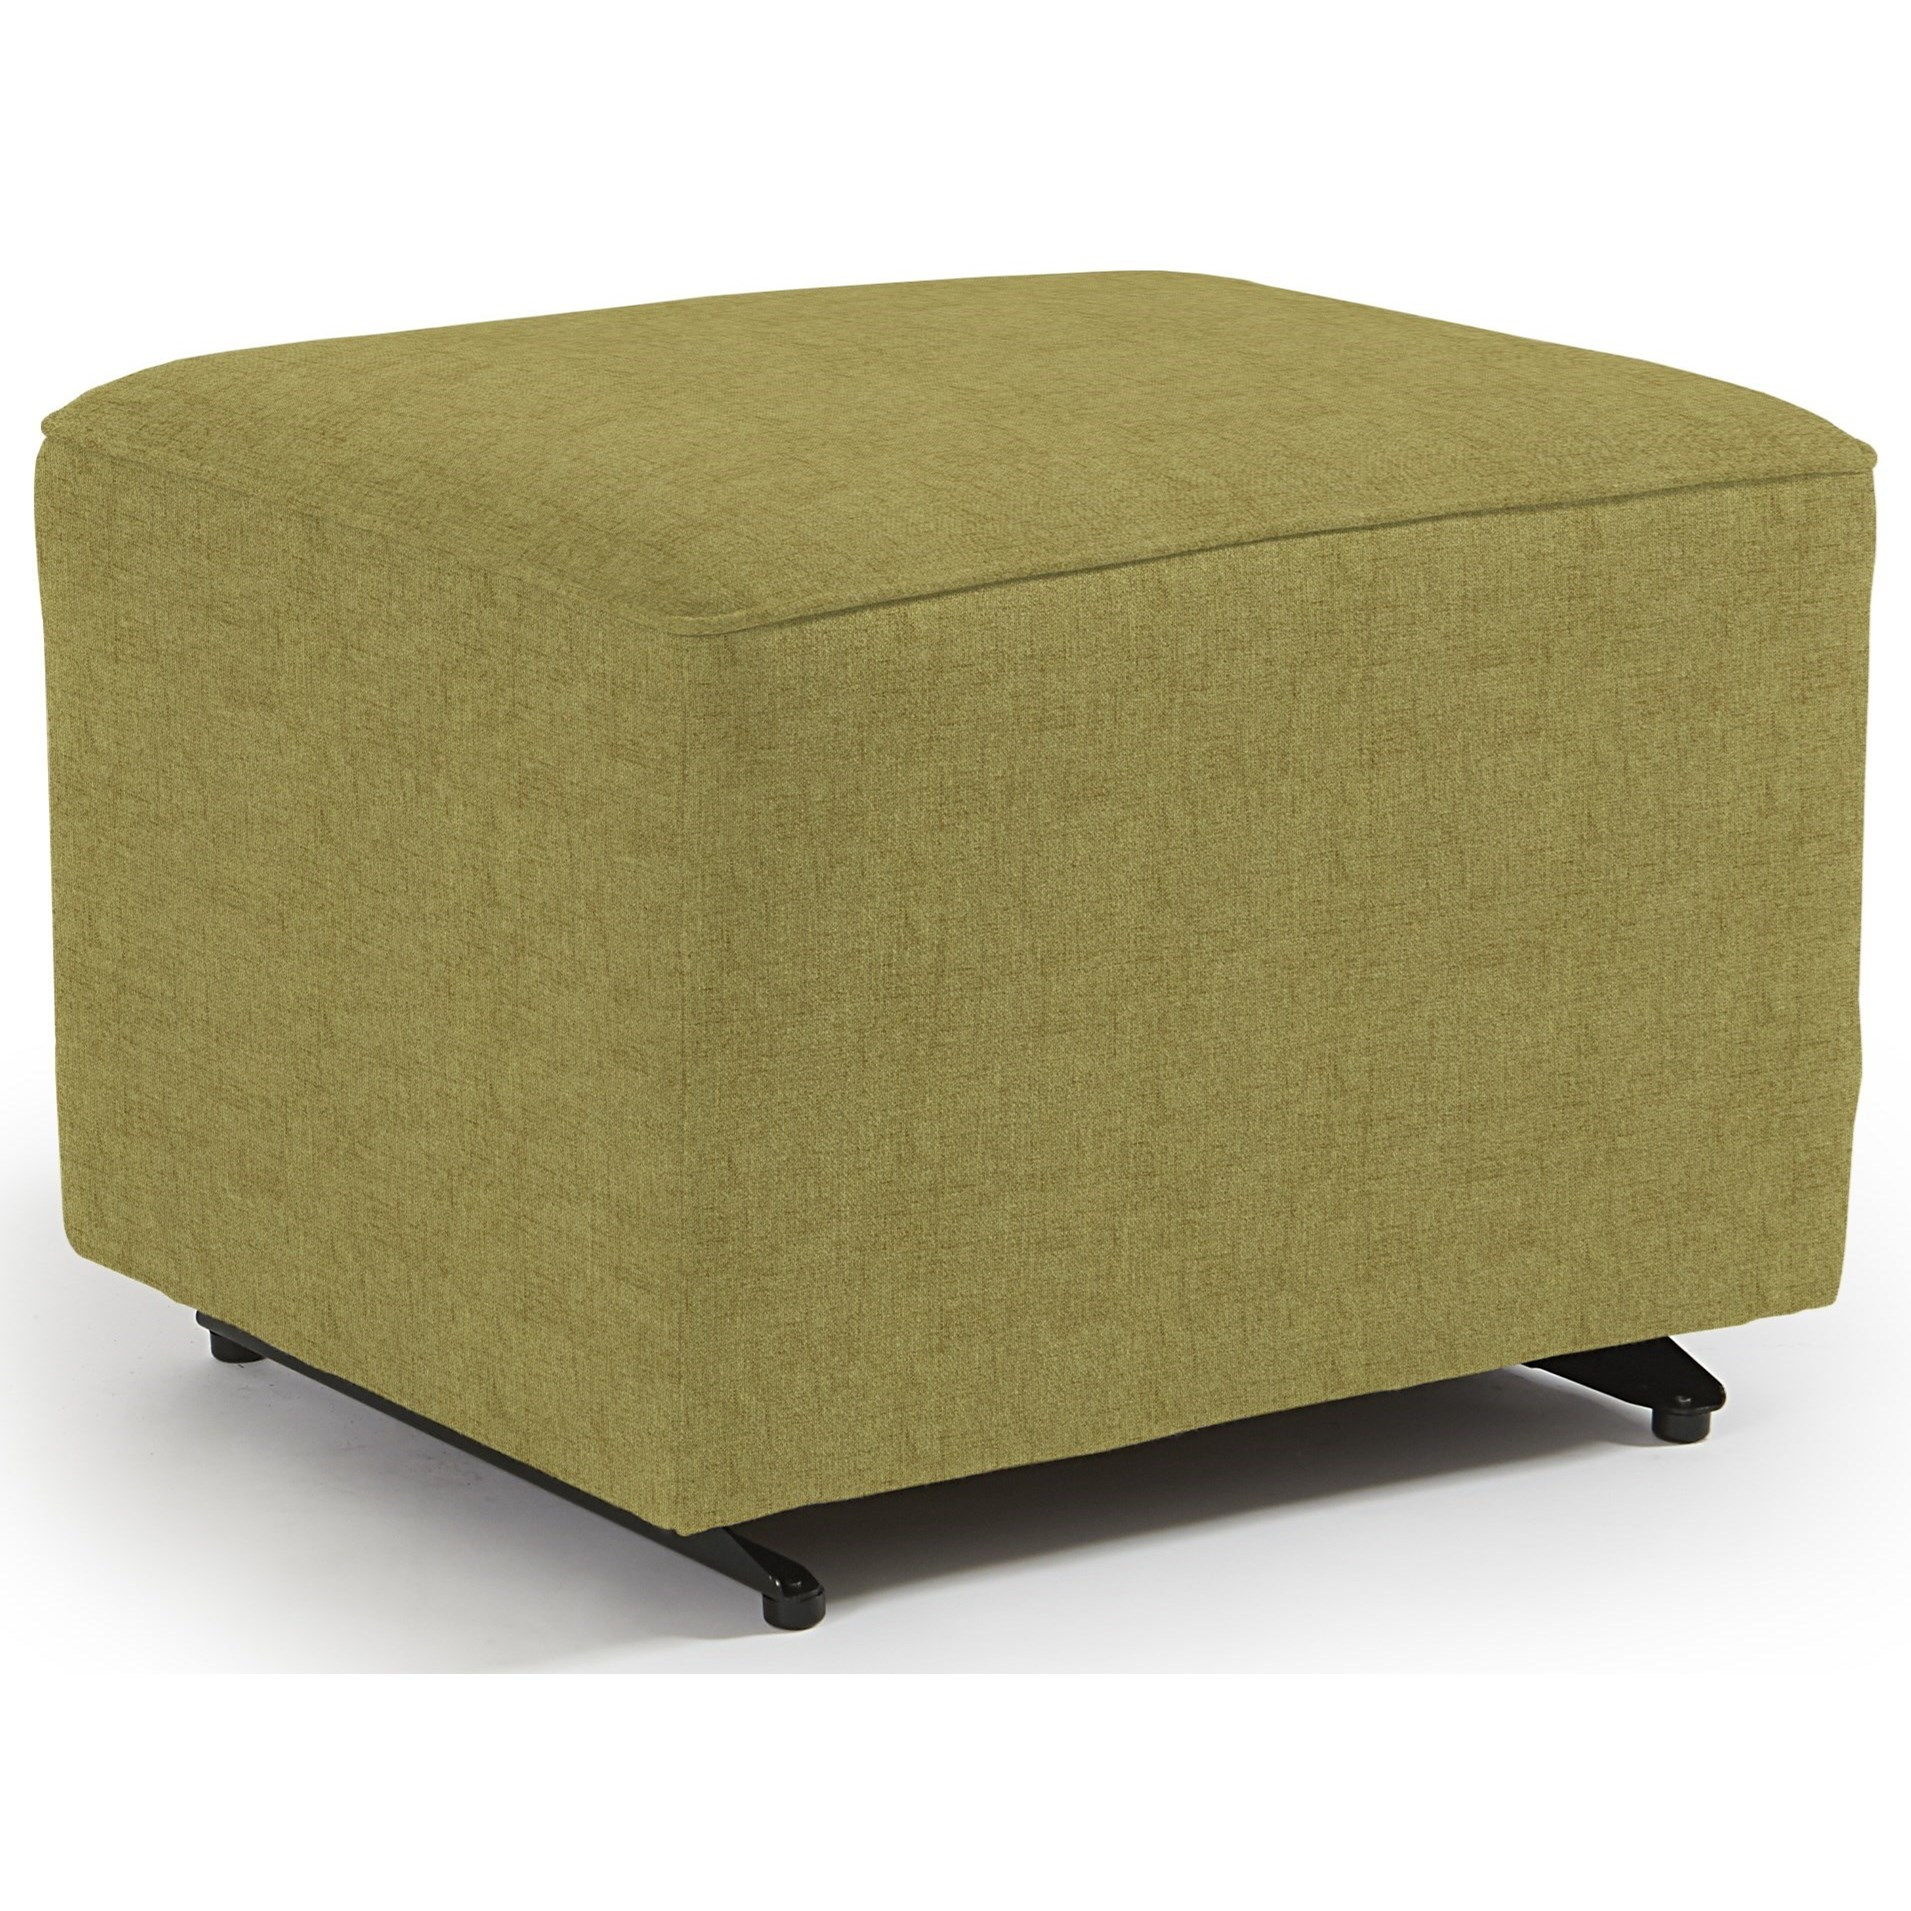 Kacey Ottoman W/ Glider Base by Best Home Furnishings at Johnny Janosik